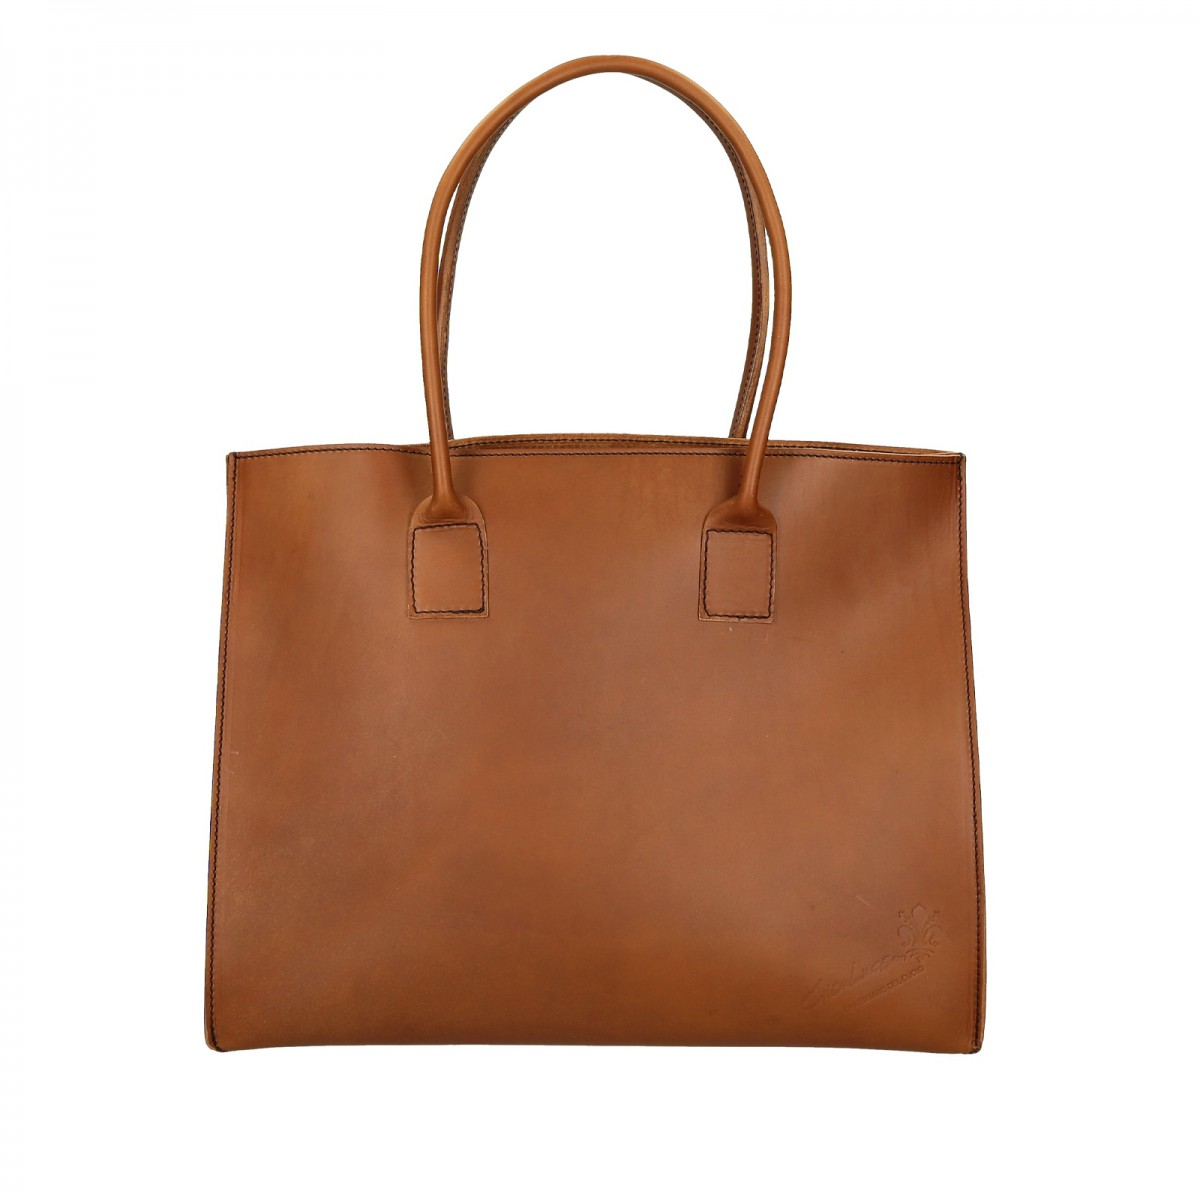 handmade tote bag for women in tan leather gianluca the leather craftsman. Black Bedroom Furniture Sets. Home Design Ideas